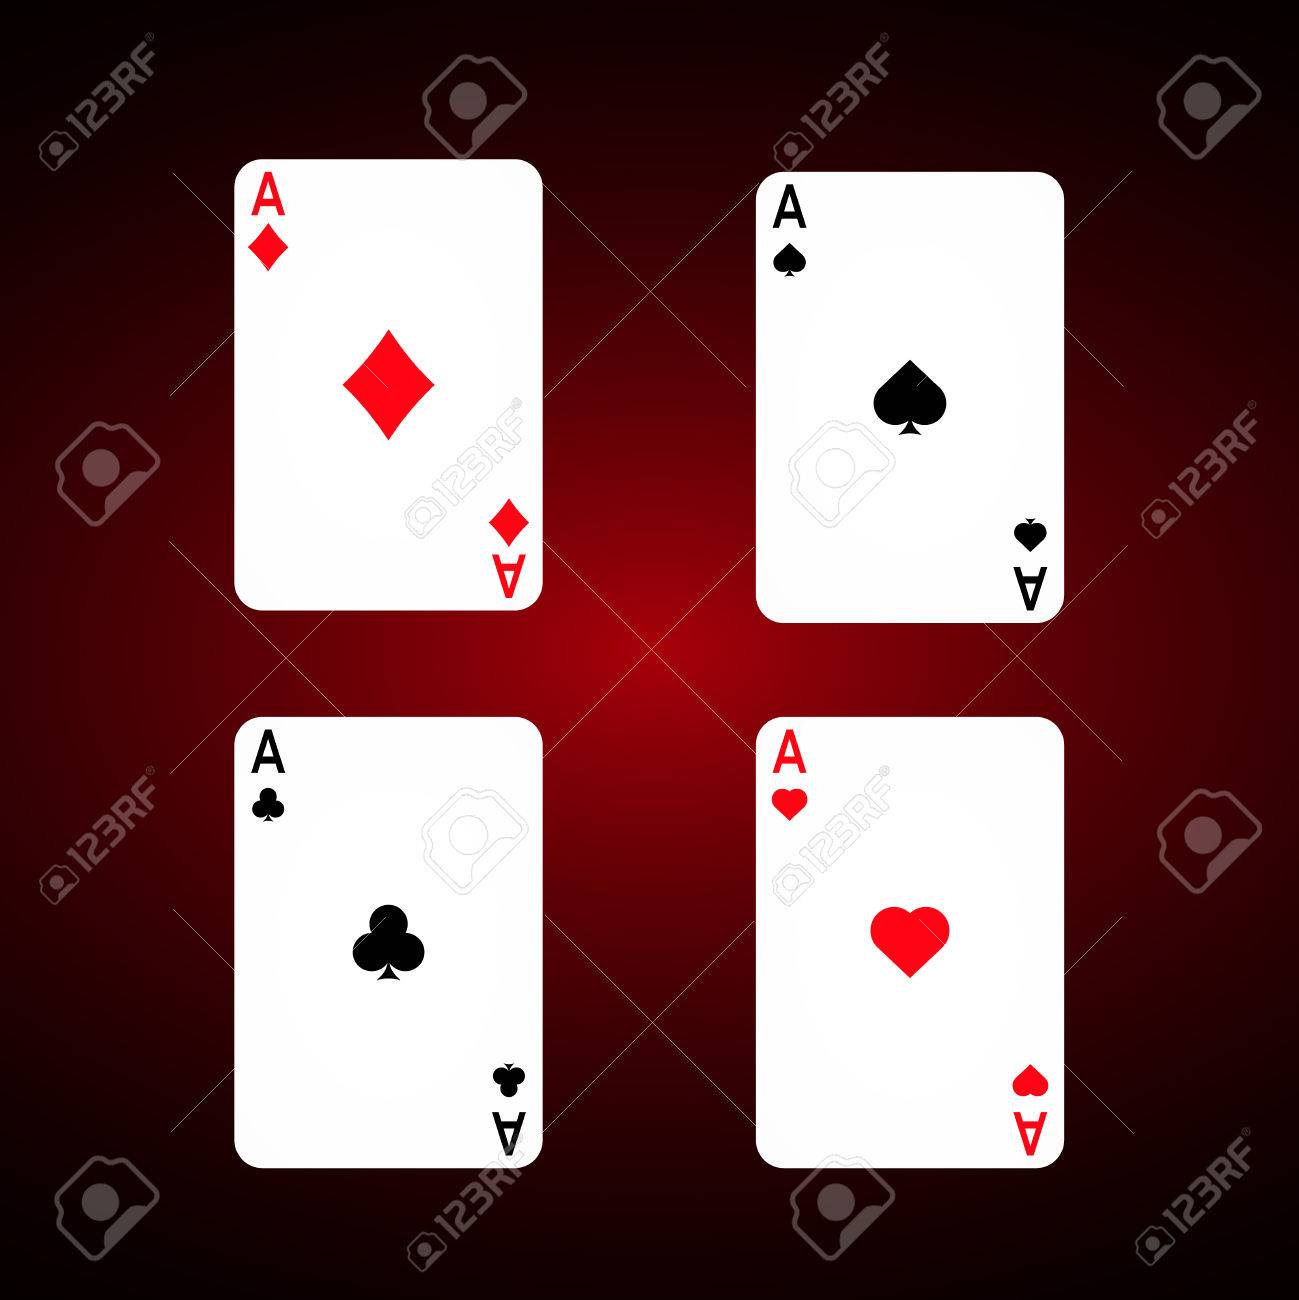 Ace Set Vector Diamonds Ace Spade Ace Club Ace Playing Cards Royalty Free Cliparts Vectors And Stock Illustration Image 74519126